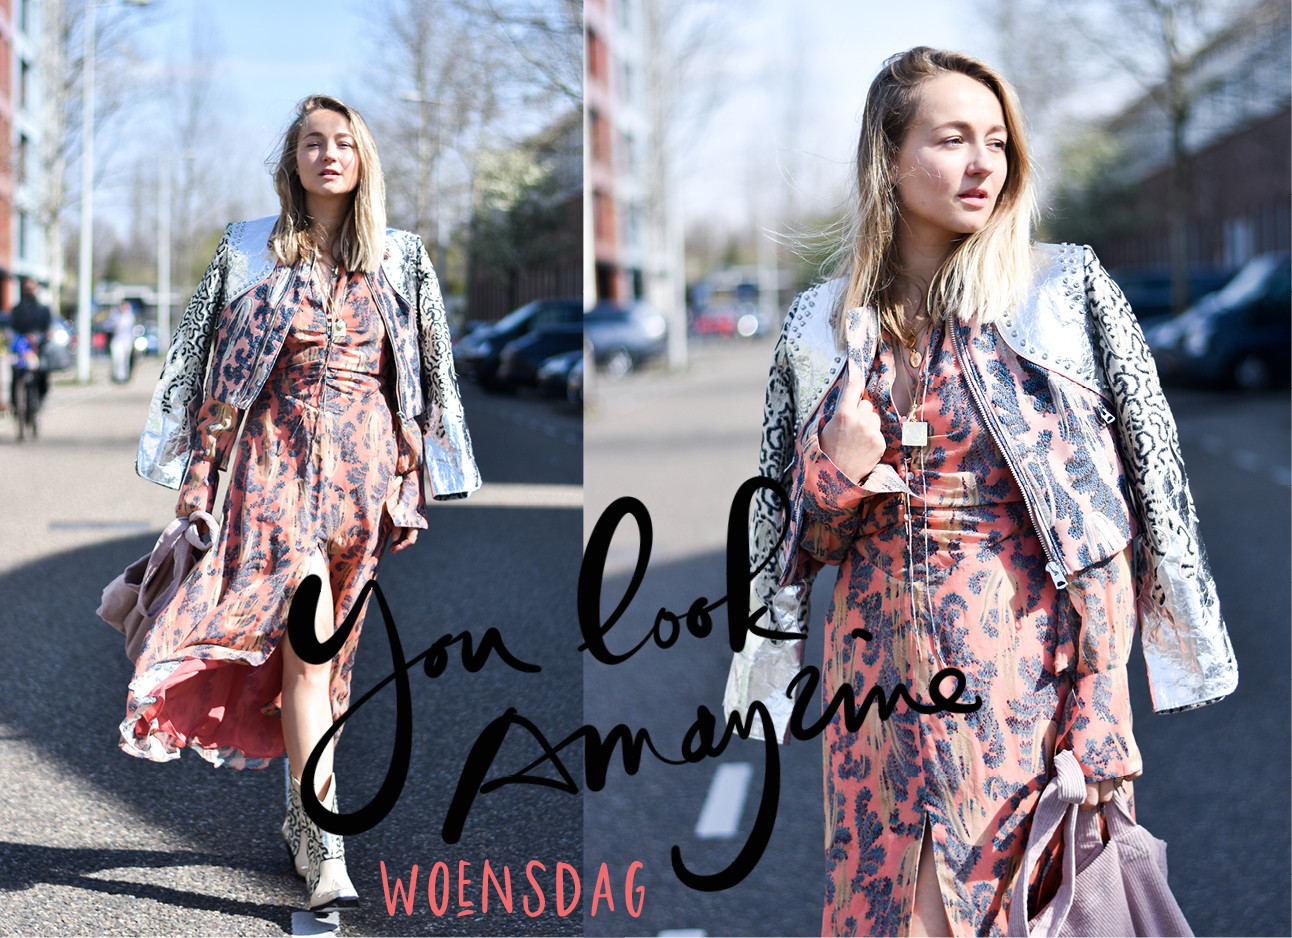 carolien spoor in de look of the day, blond haar, zilveren jack, roze jurk met print, witte cowboy boots, you look amayzine, woensdag